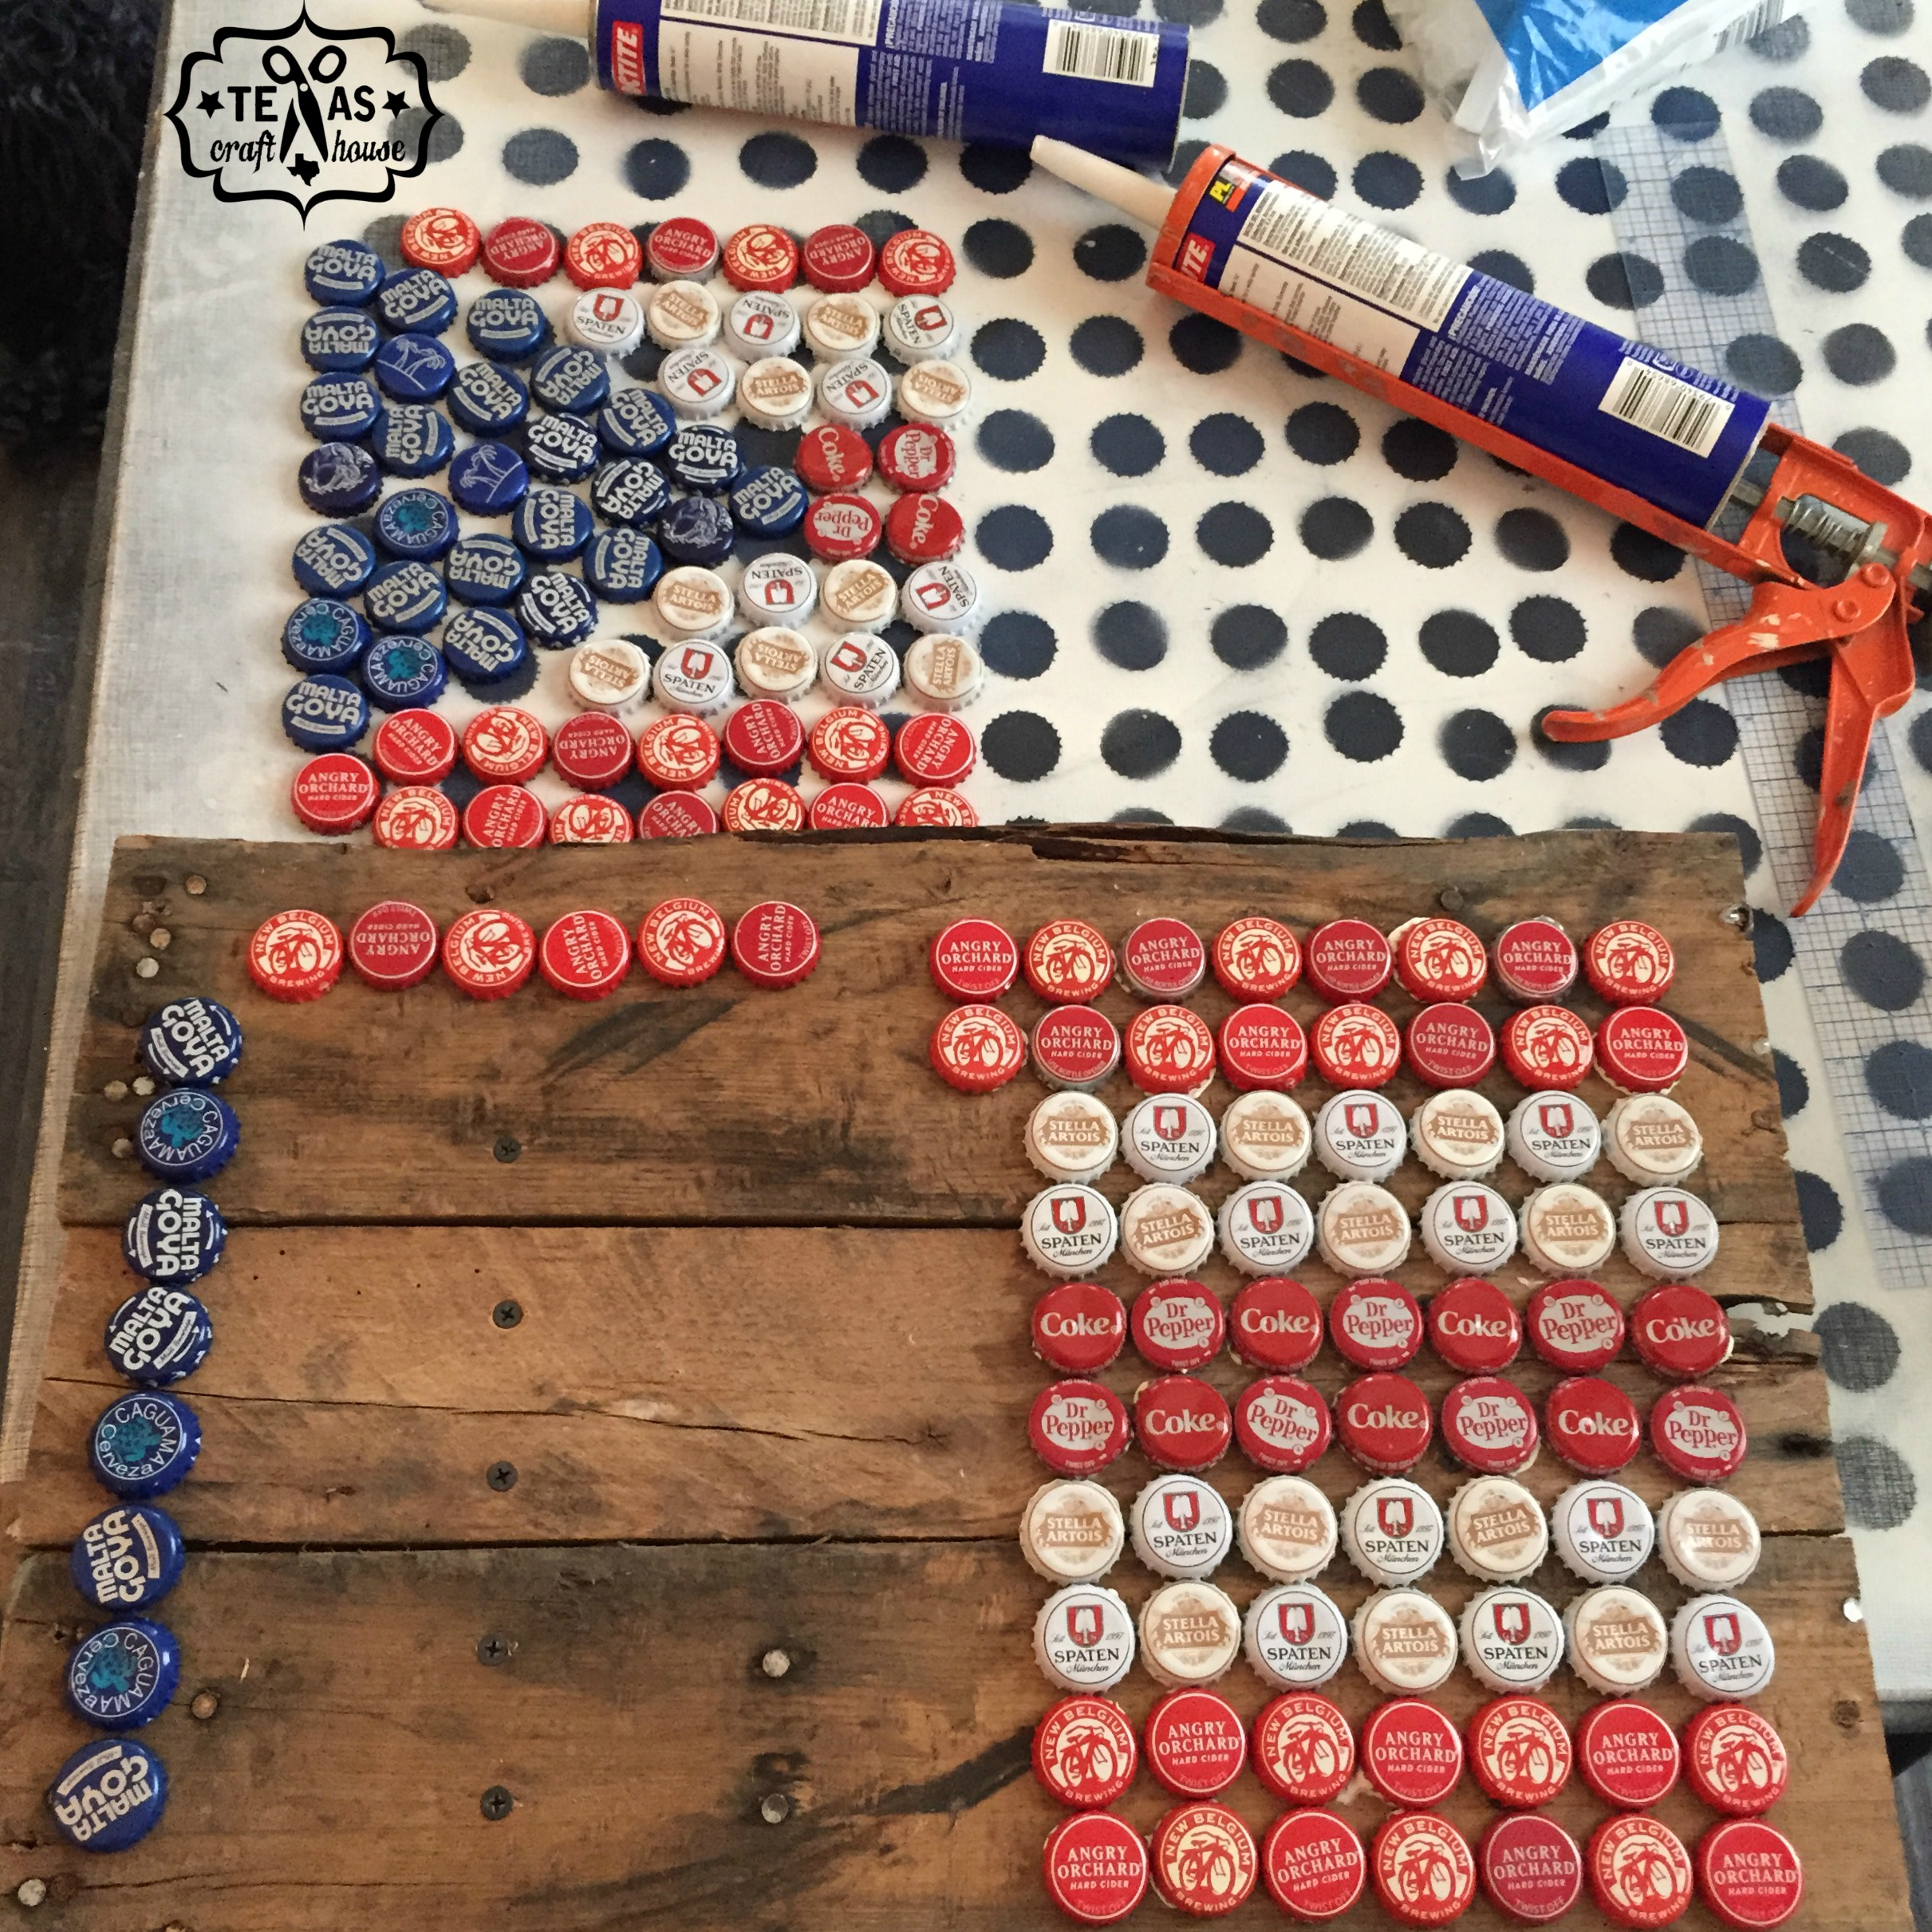 Puerto Rican Flag from Beer Caps | Texas Craft House